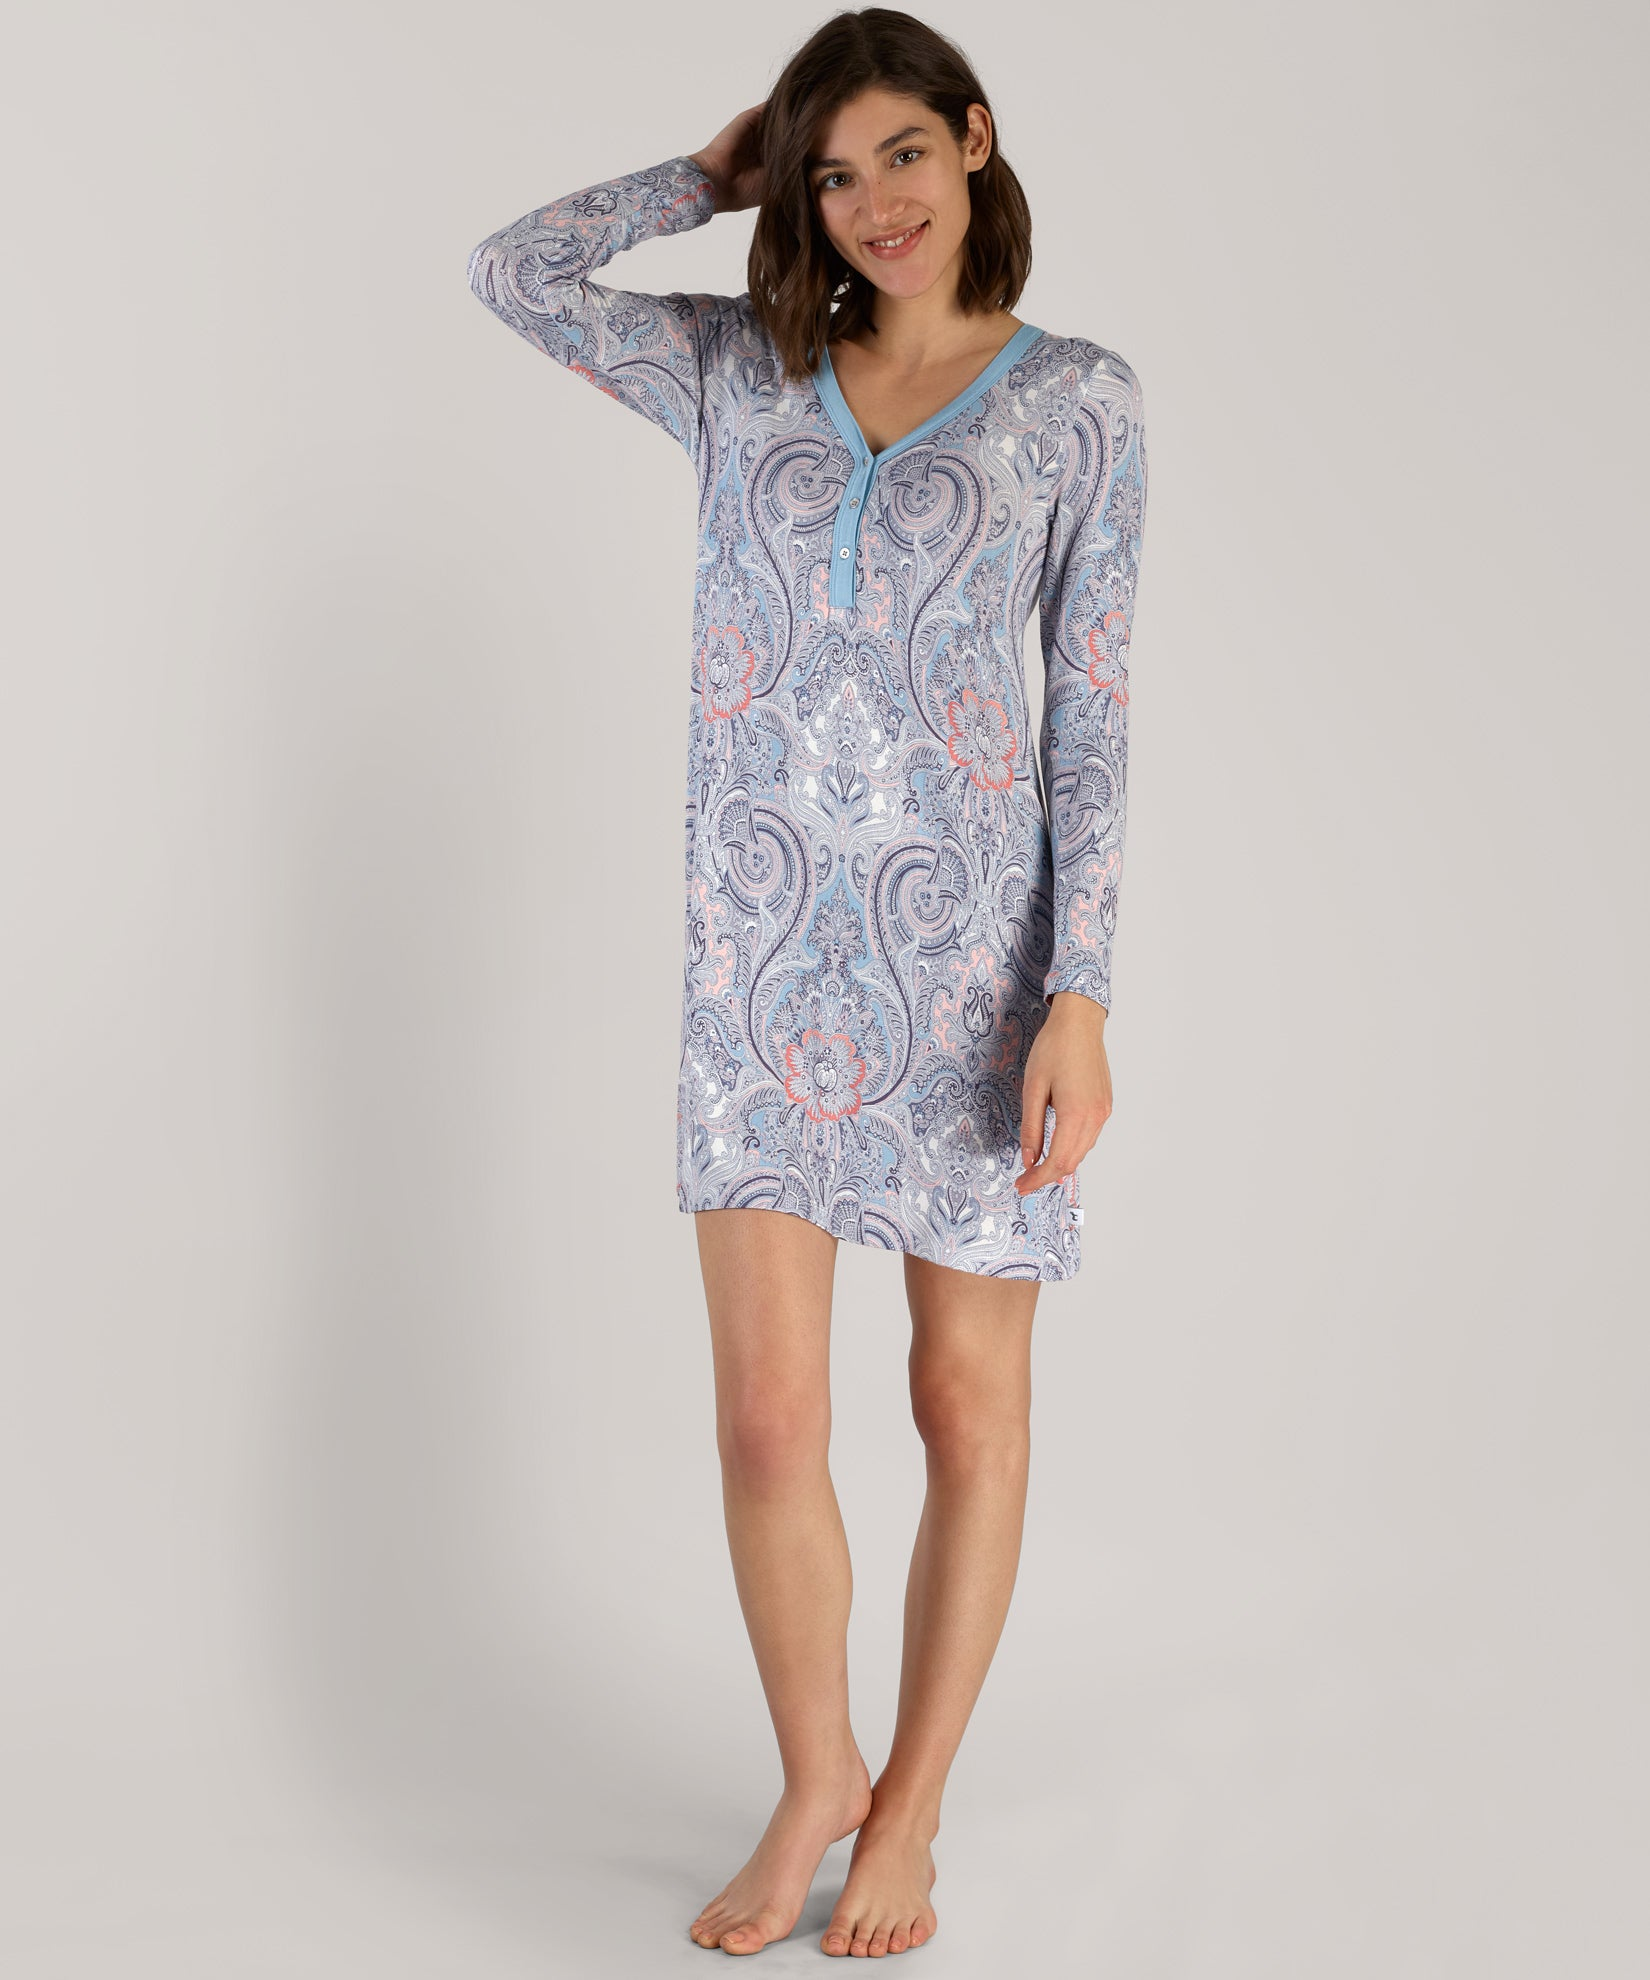 Avalon Sleepshirt - Avalon Sleepshirt